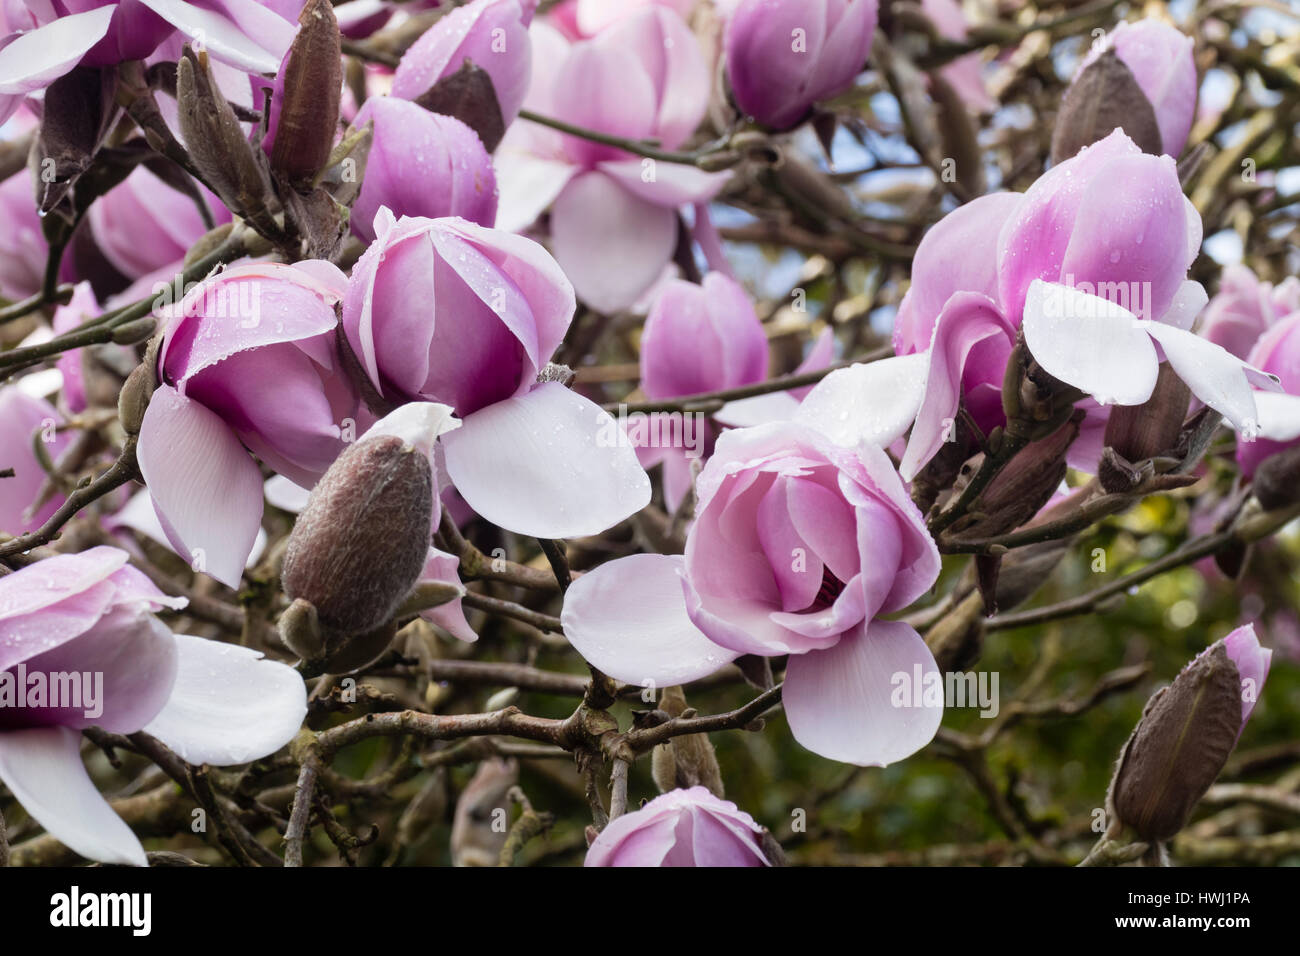 Large Pink Early Spring Flowers Of The Hybrid Tree Stock Photo